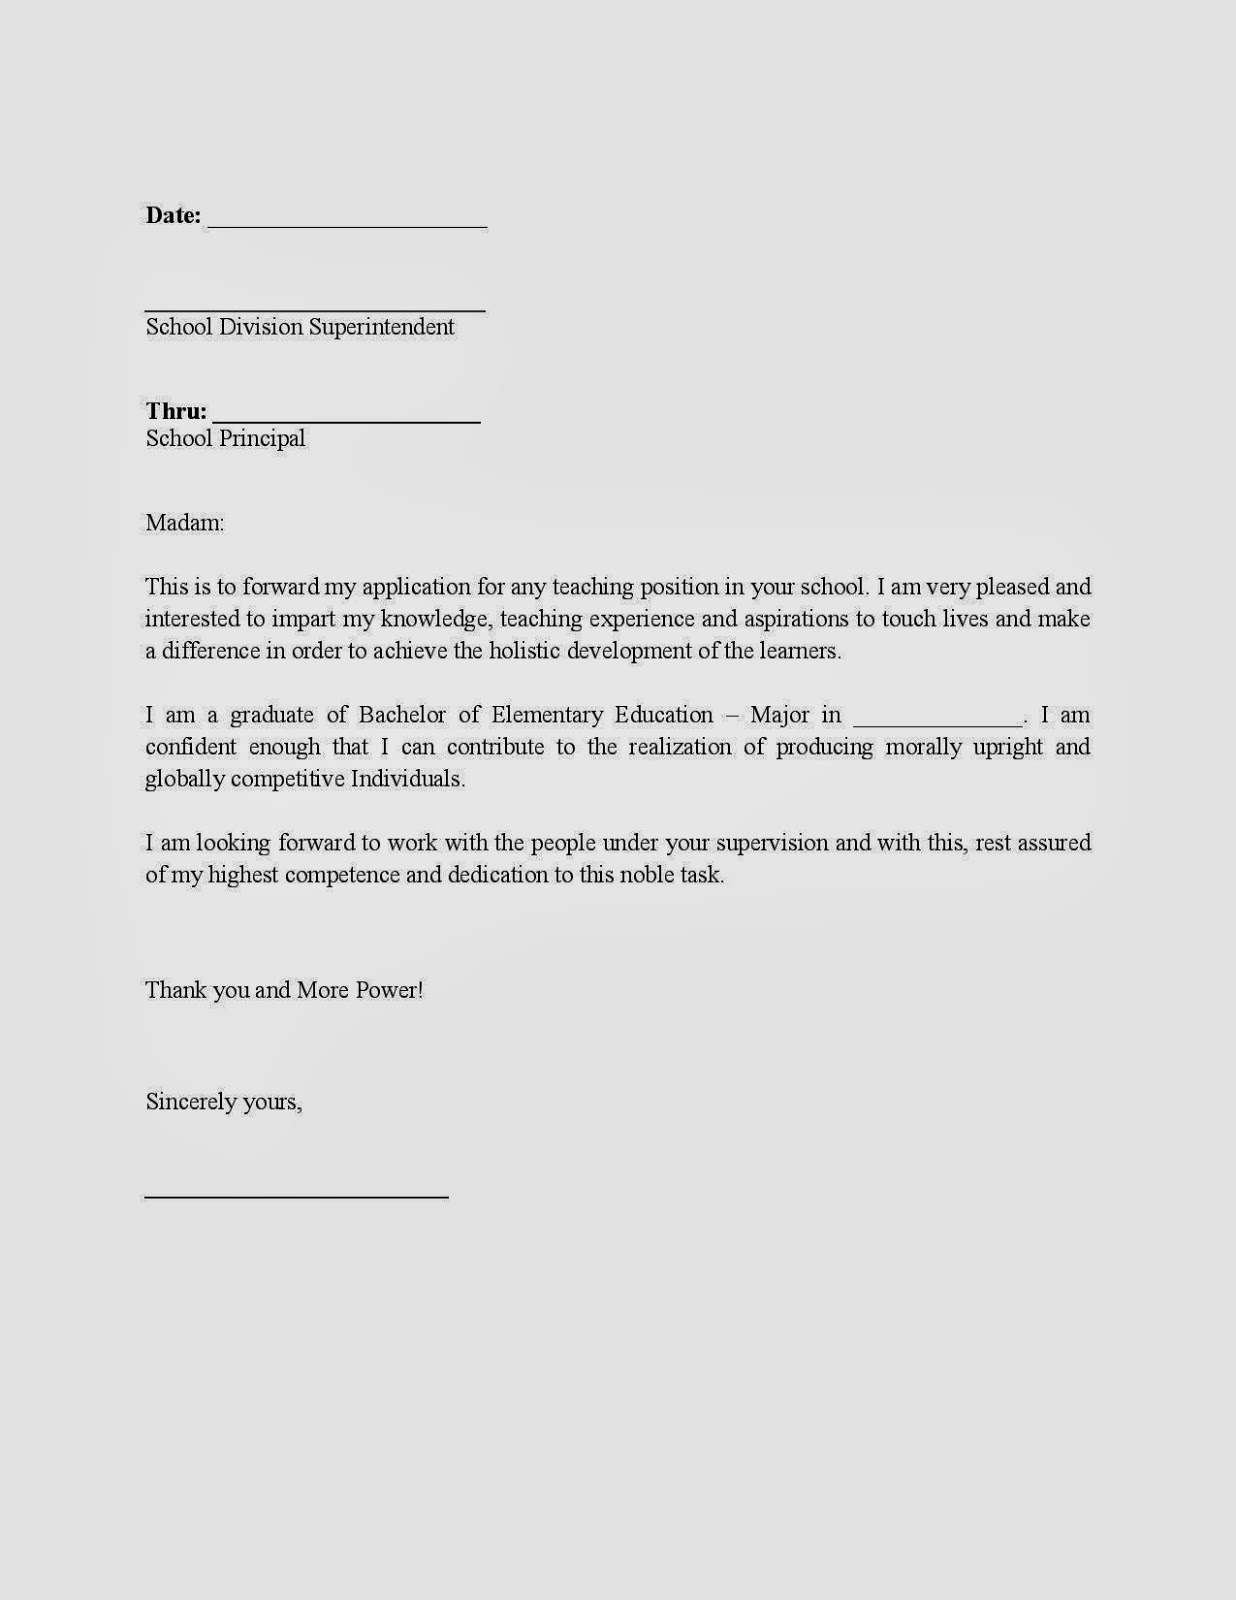 Leave absence college letter letterf application sample for best leave application letter to school principal how to write a school leave letter how to go spiritdancerdesigns Choice Image